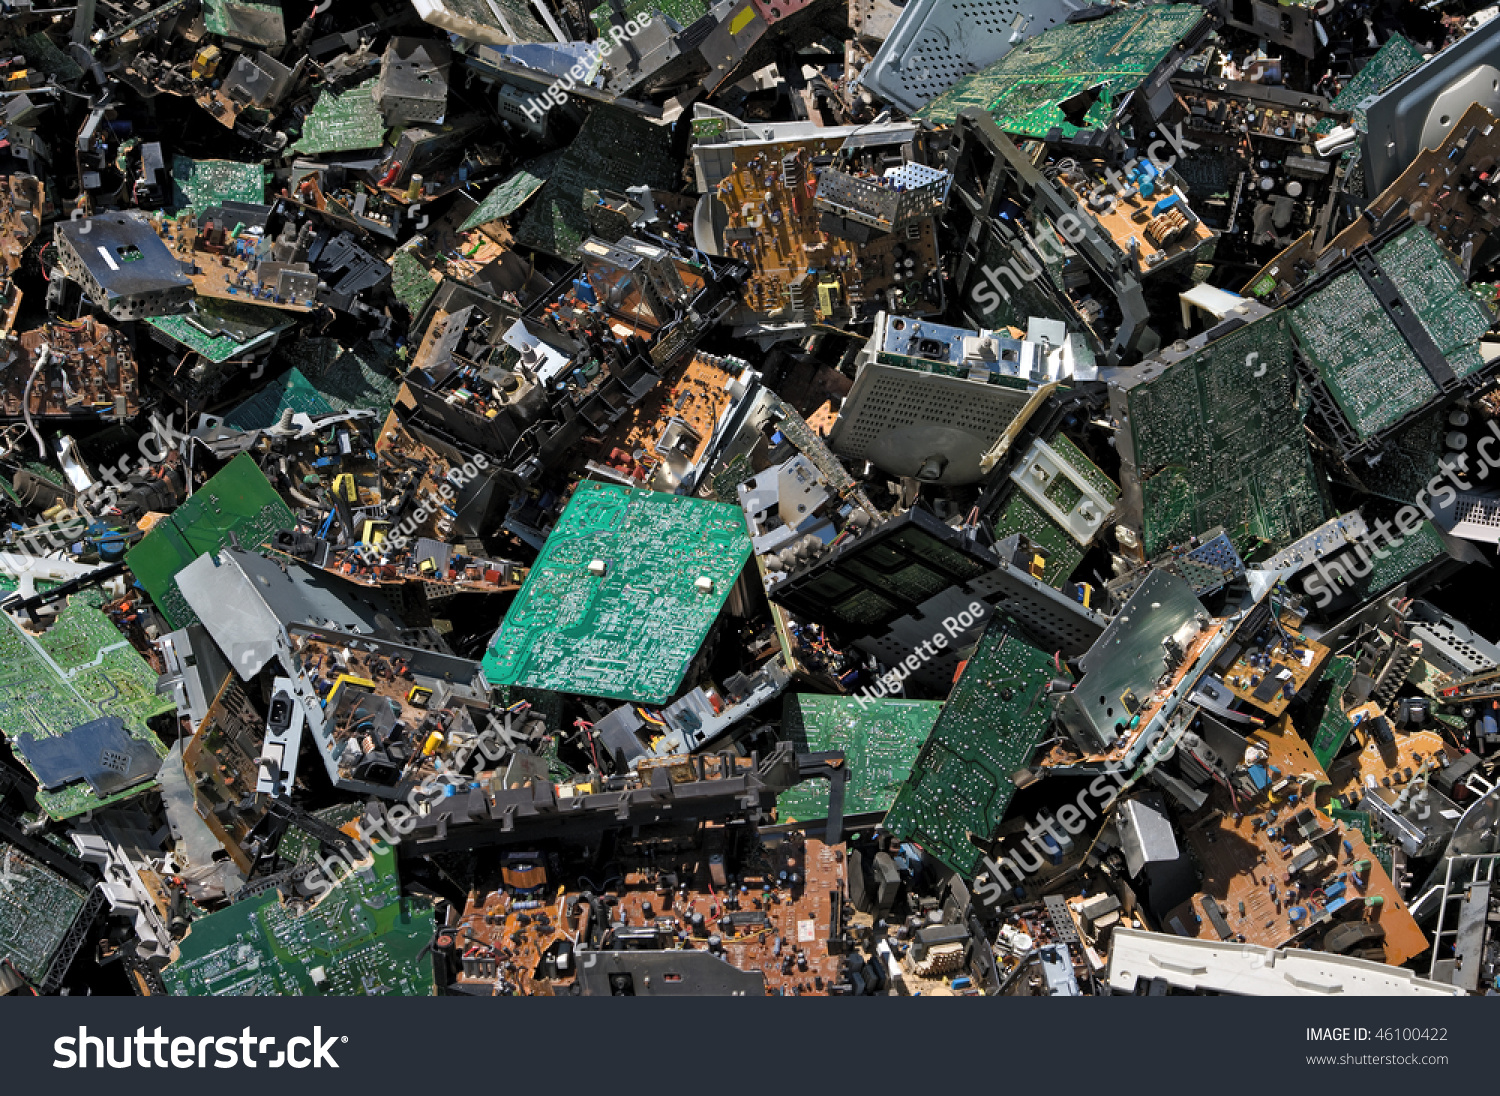 Pile Circuit Board Recycling Stock Photo Edit Now 46100422 Scrap Machine Computer Of For